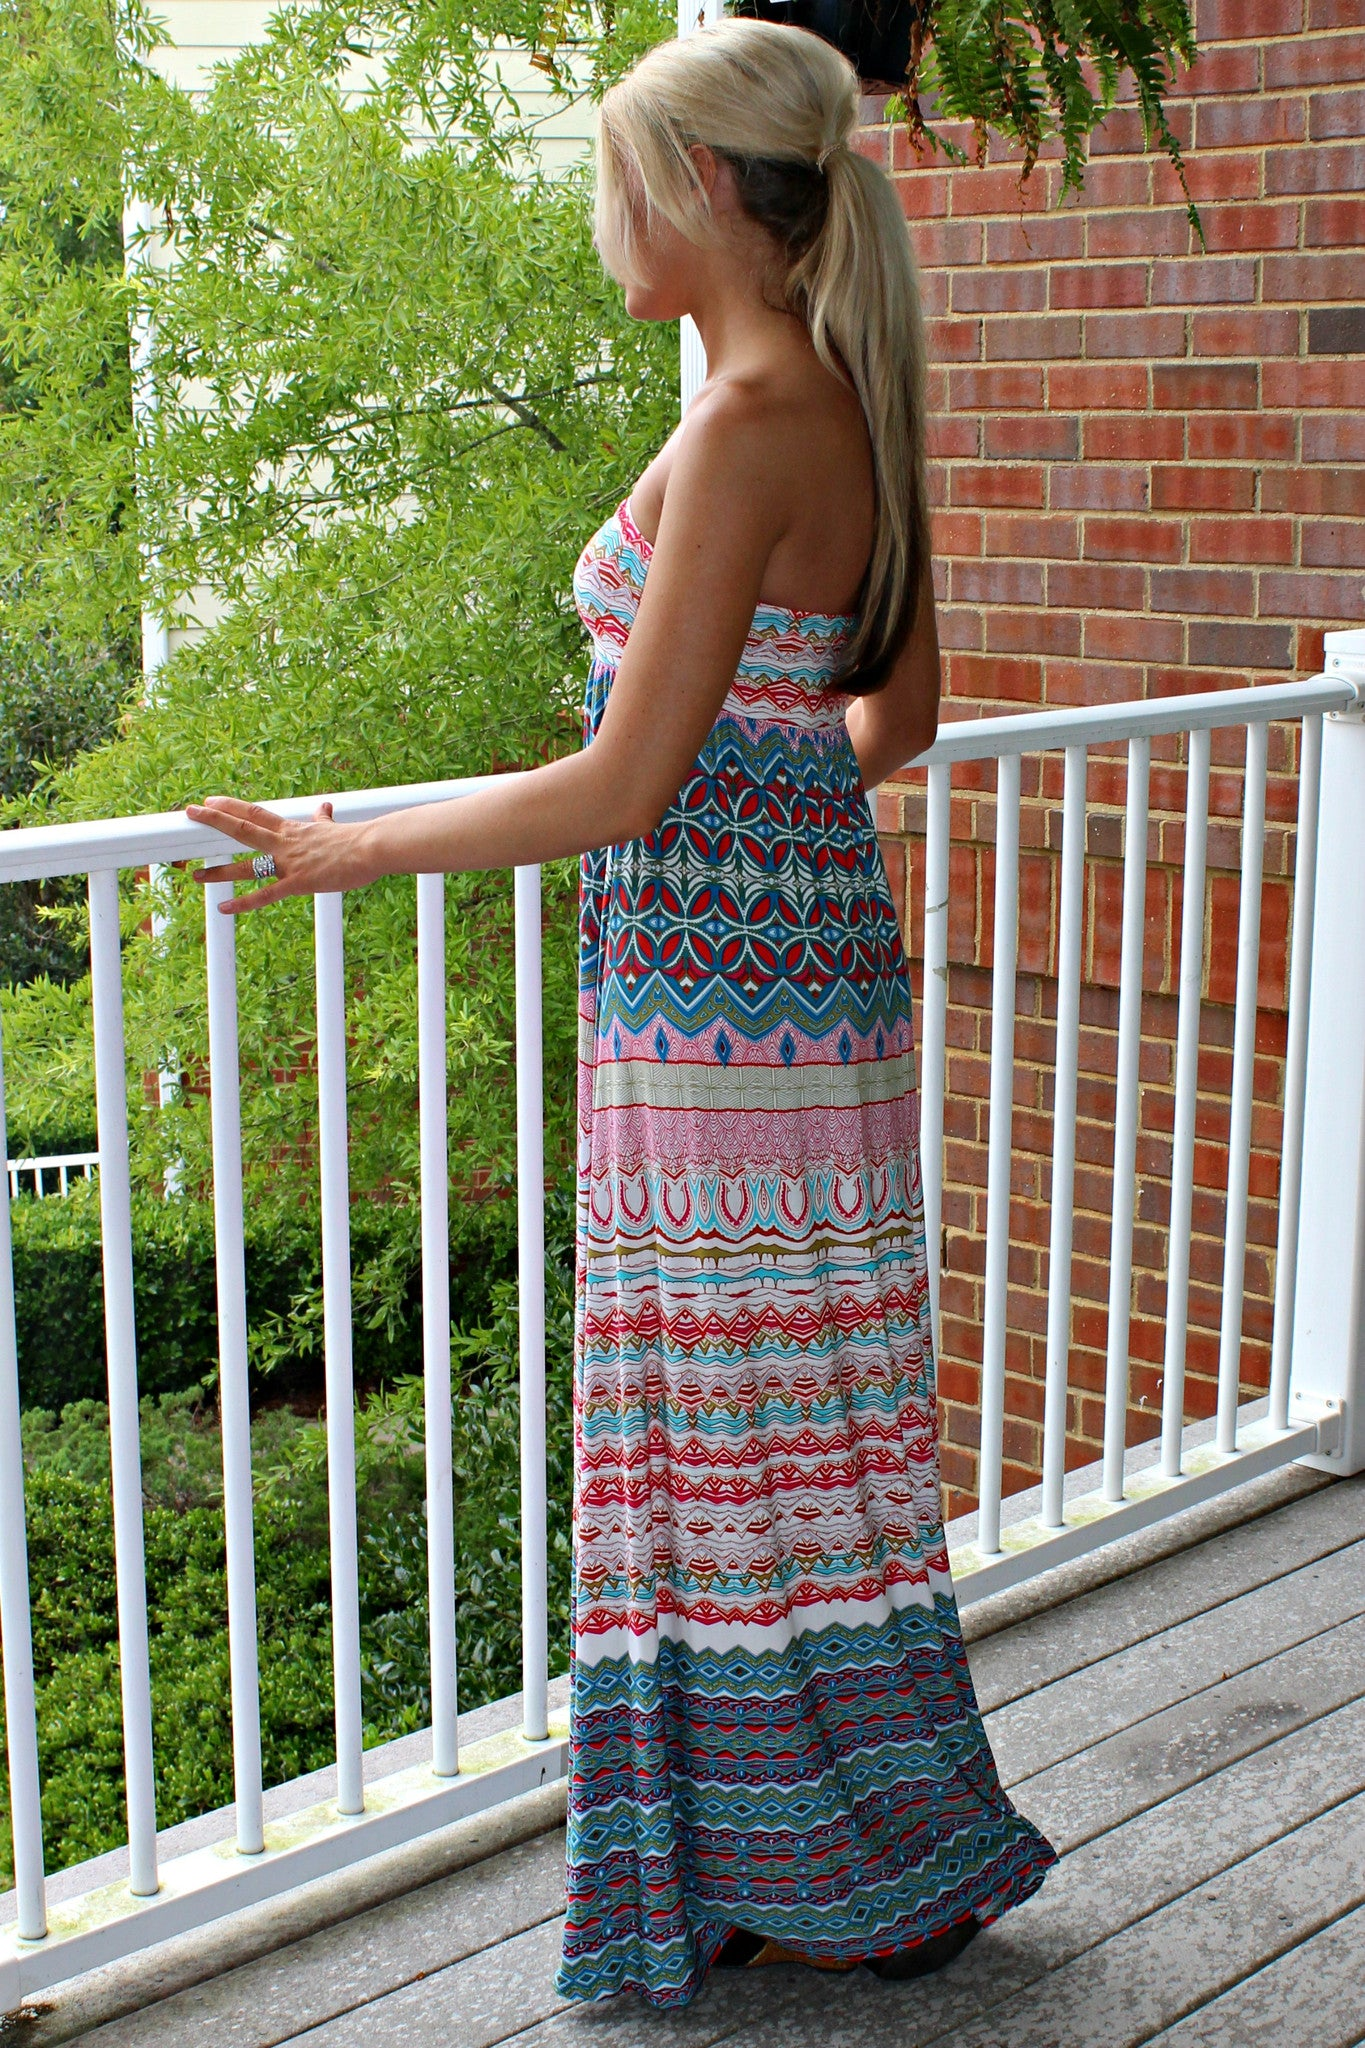 Glam: Misty Maxi Dress, Multi